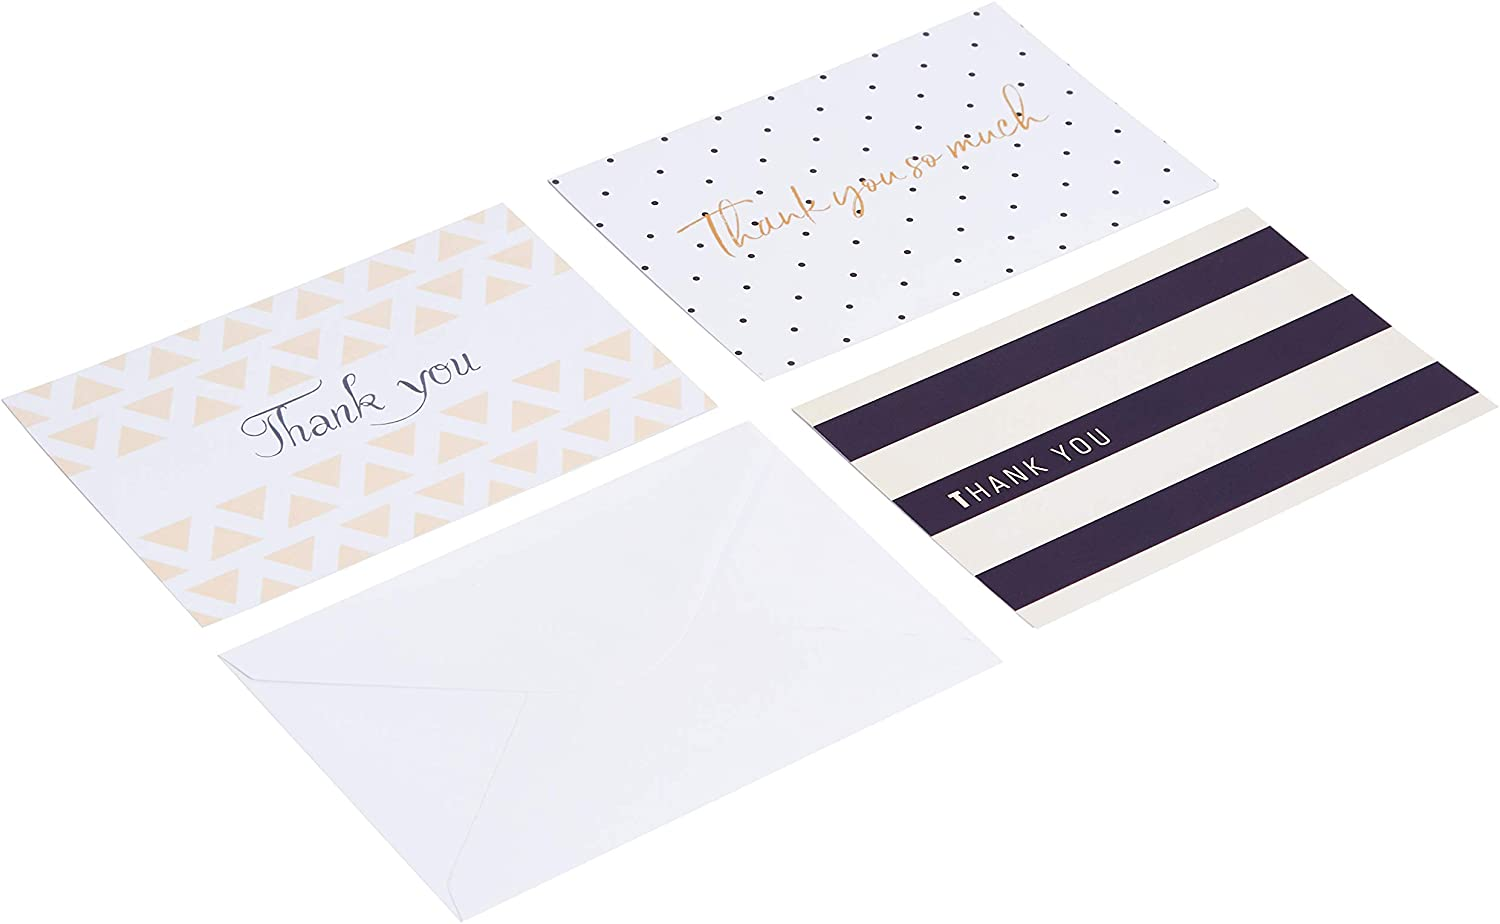 AmazonBasics Thank You Cards, Polka Dot and Stripe, 48 Cards and Envelopes